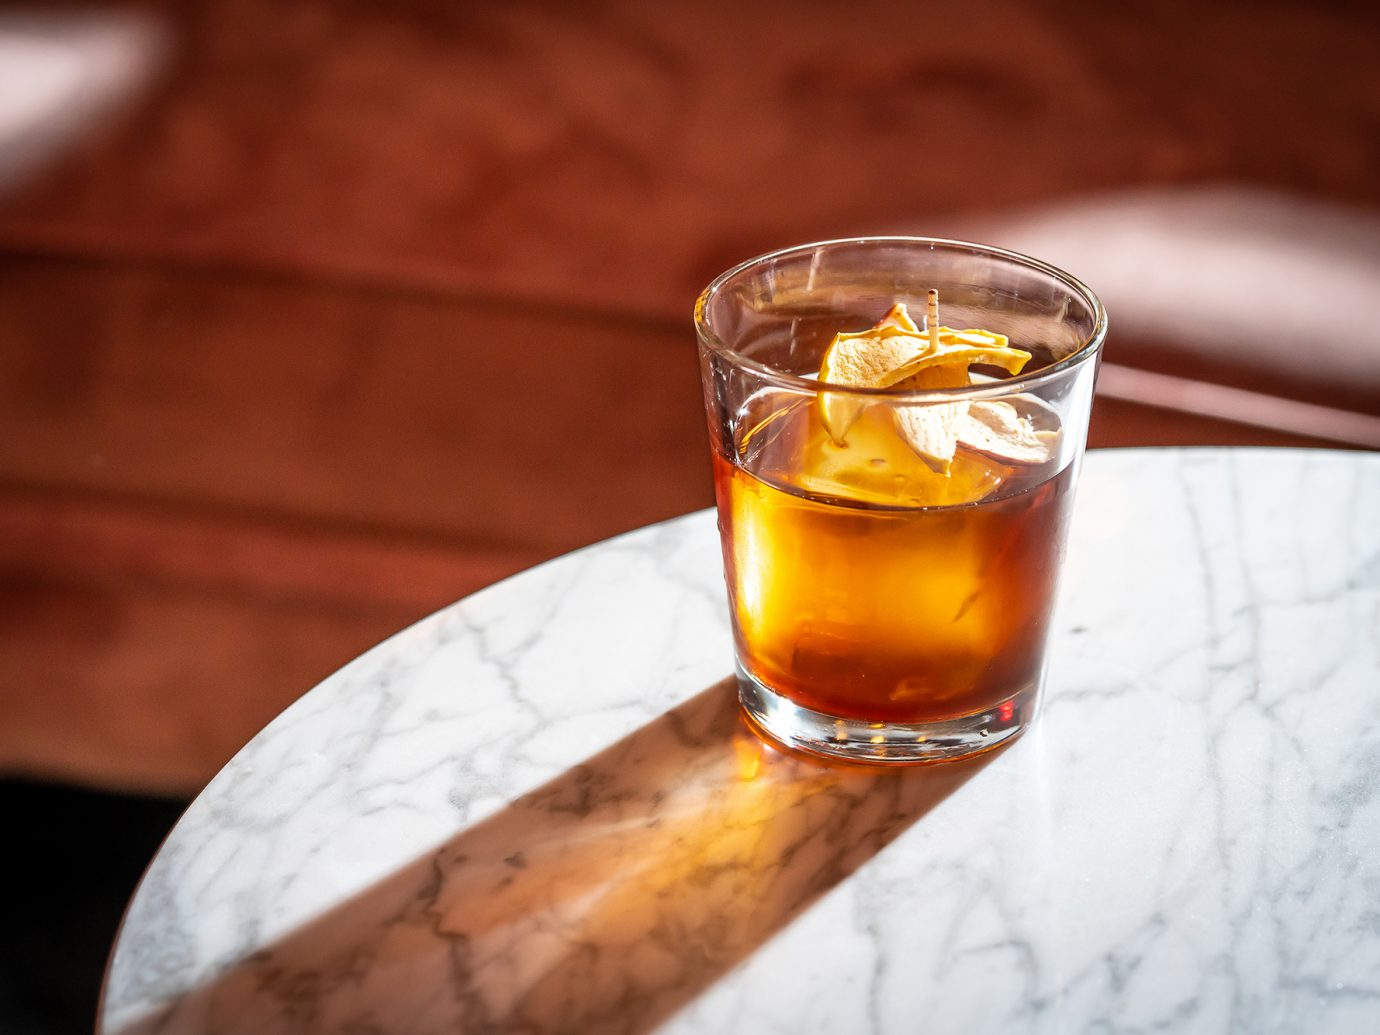 brown alcoholic drink in cup